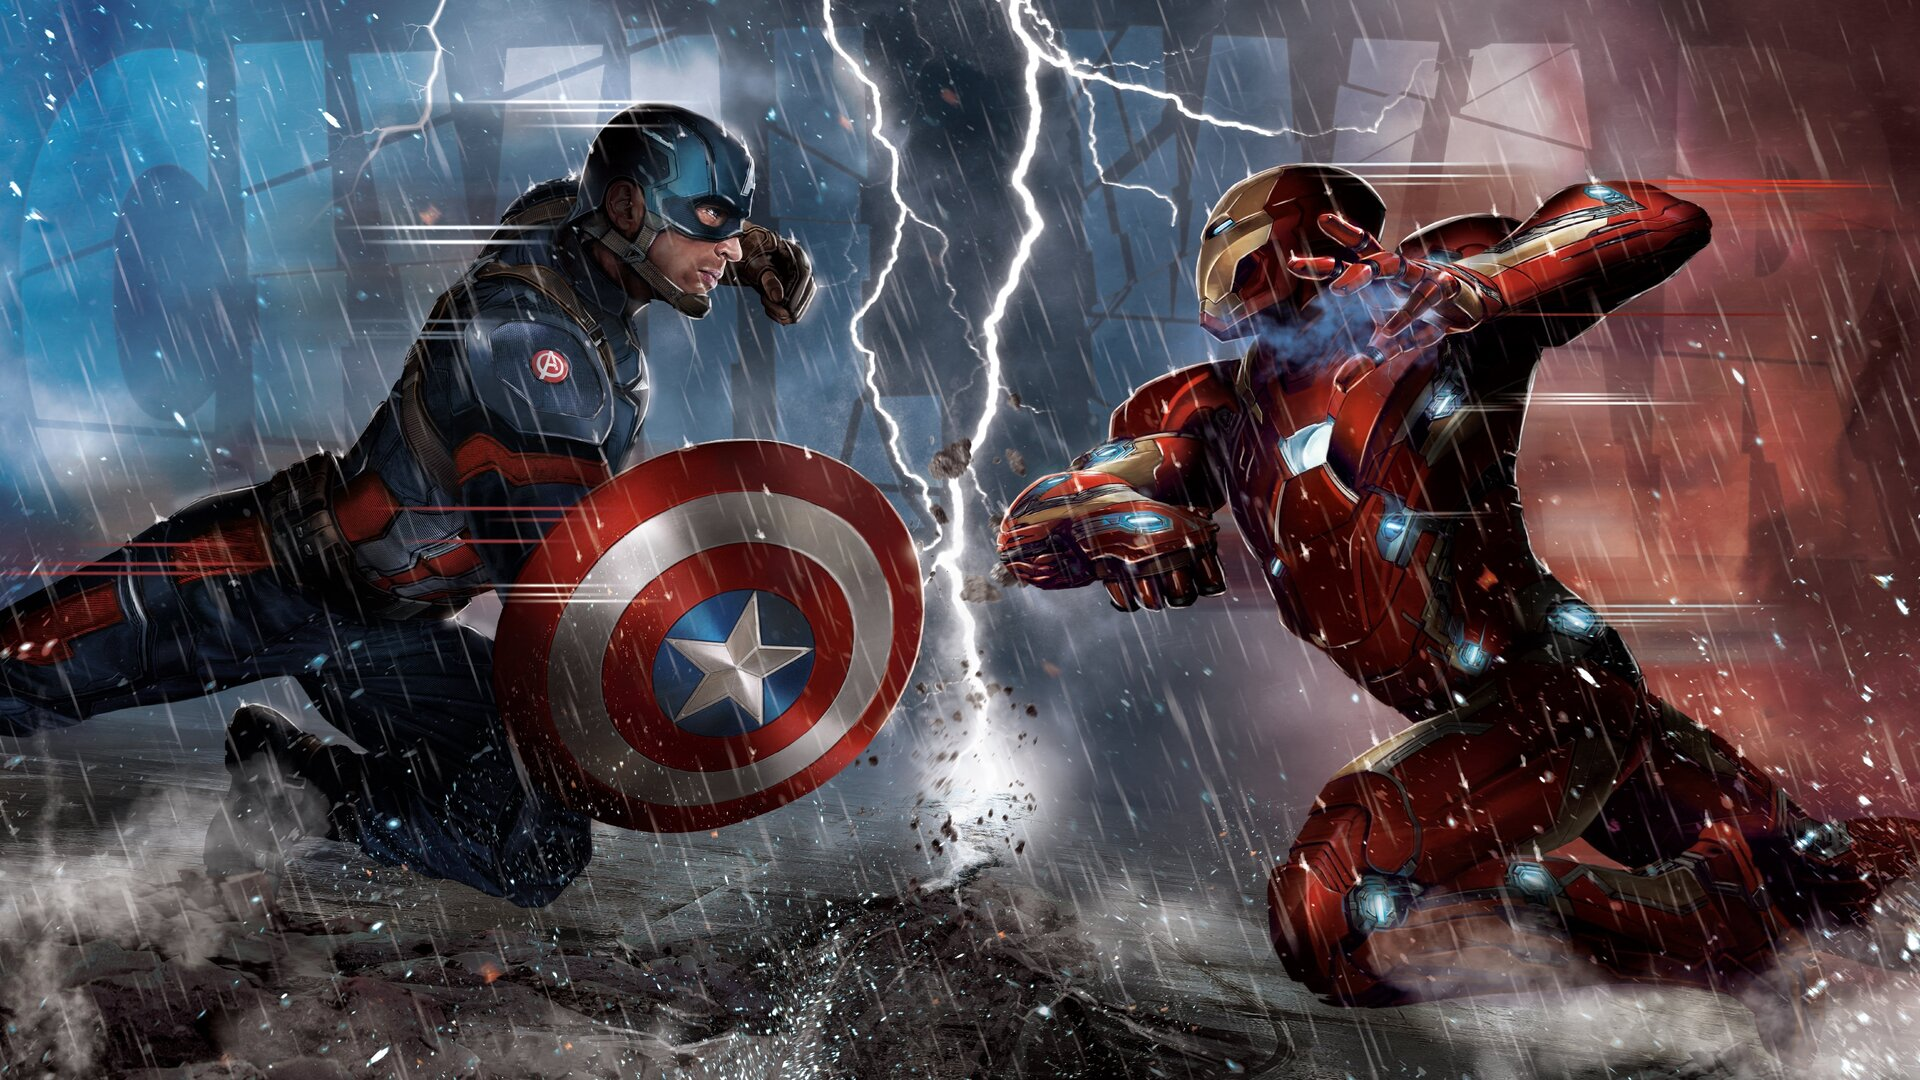 1920x1080 captain america vs iron man comic 5k laptop full hd 1080p